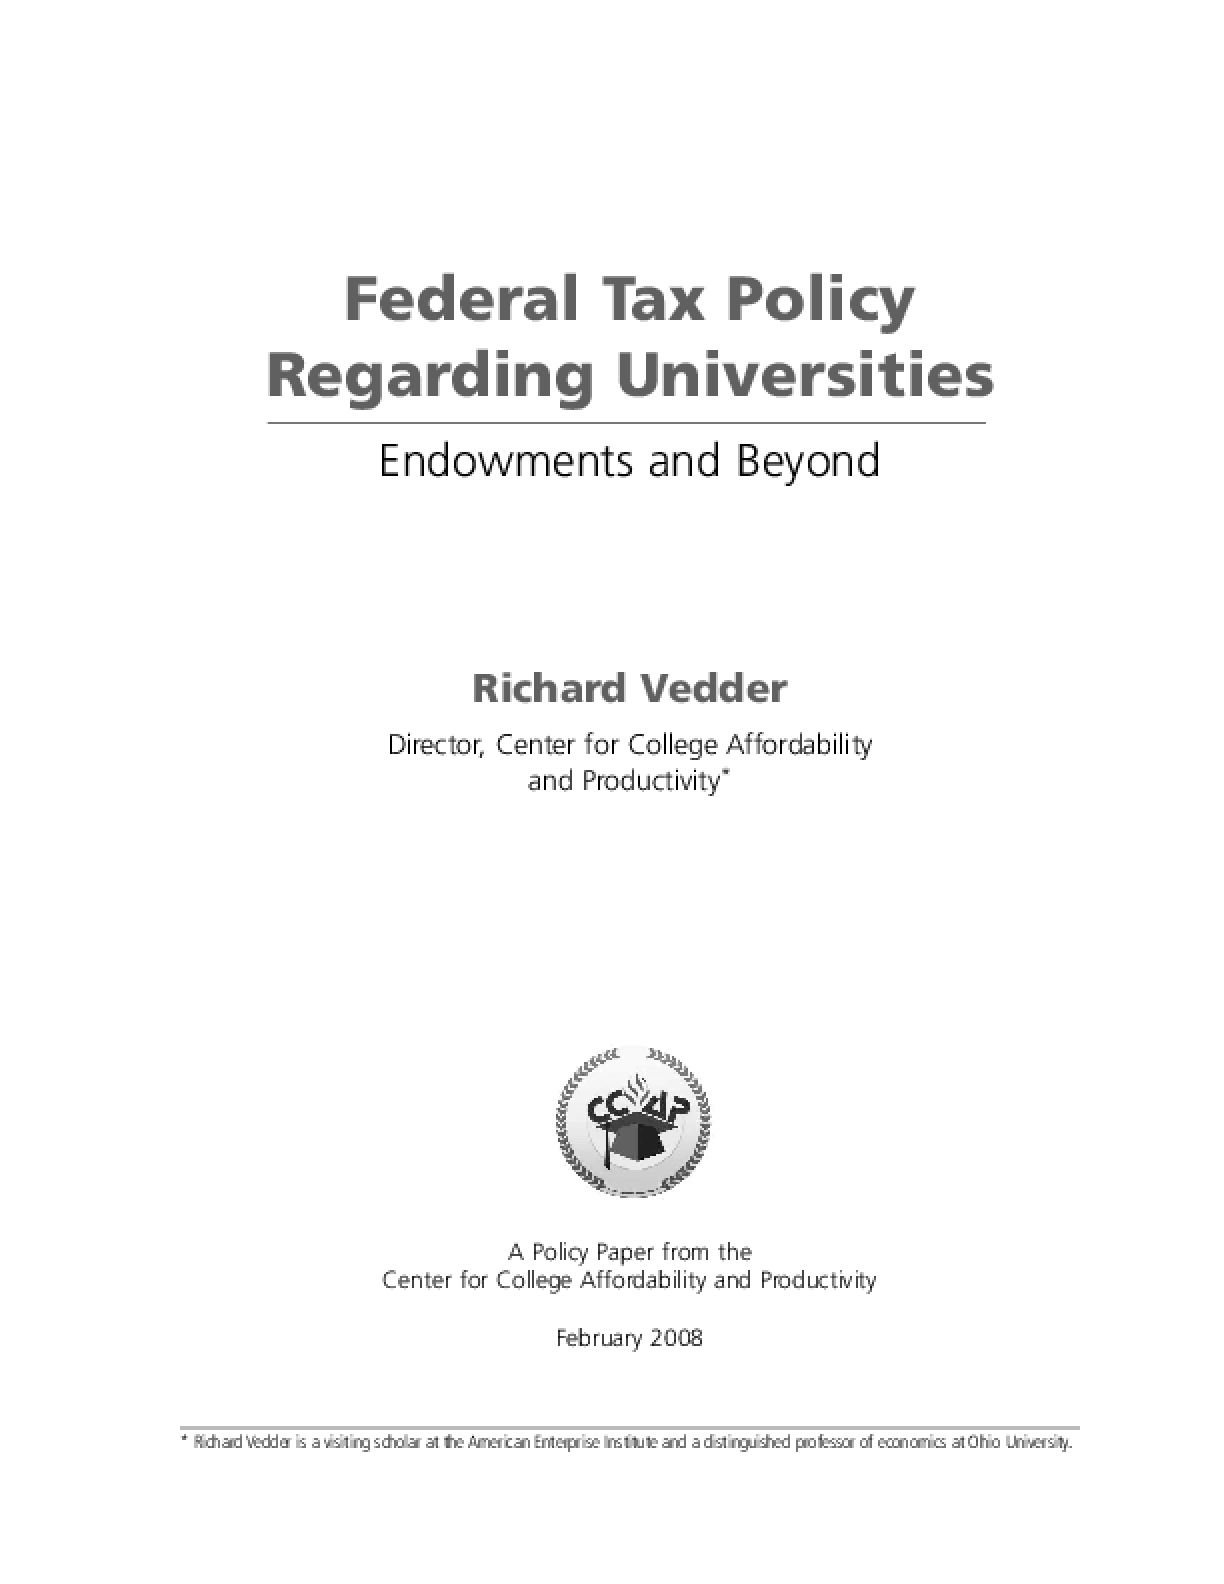 Federal Tax Policy Regarding Universities